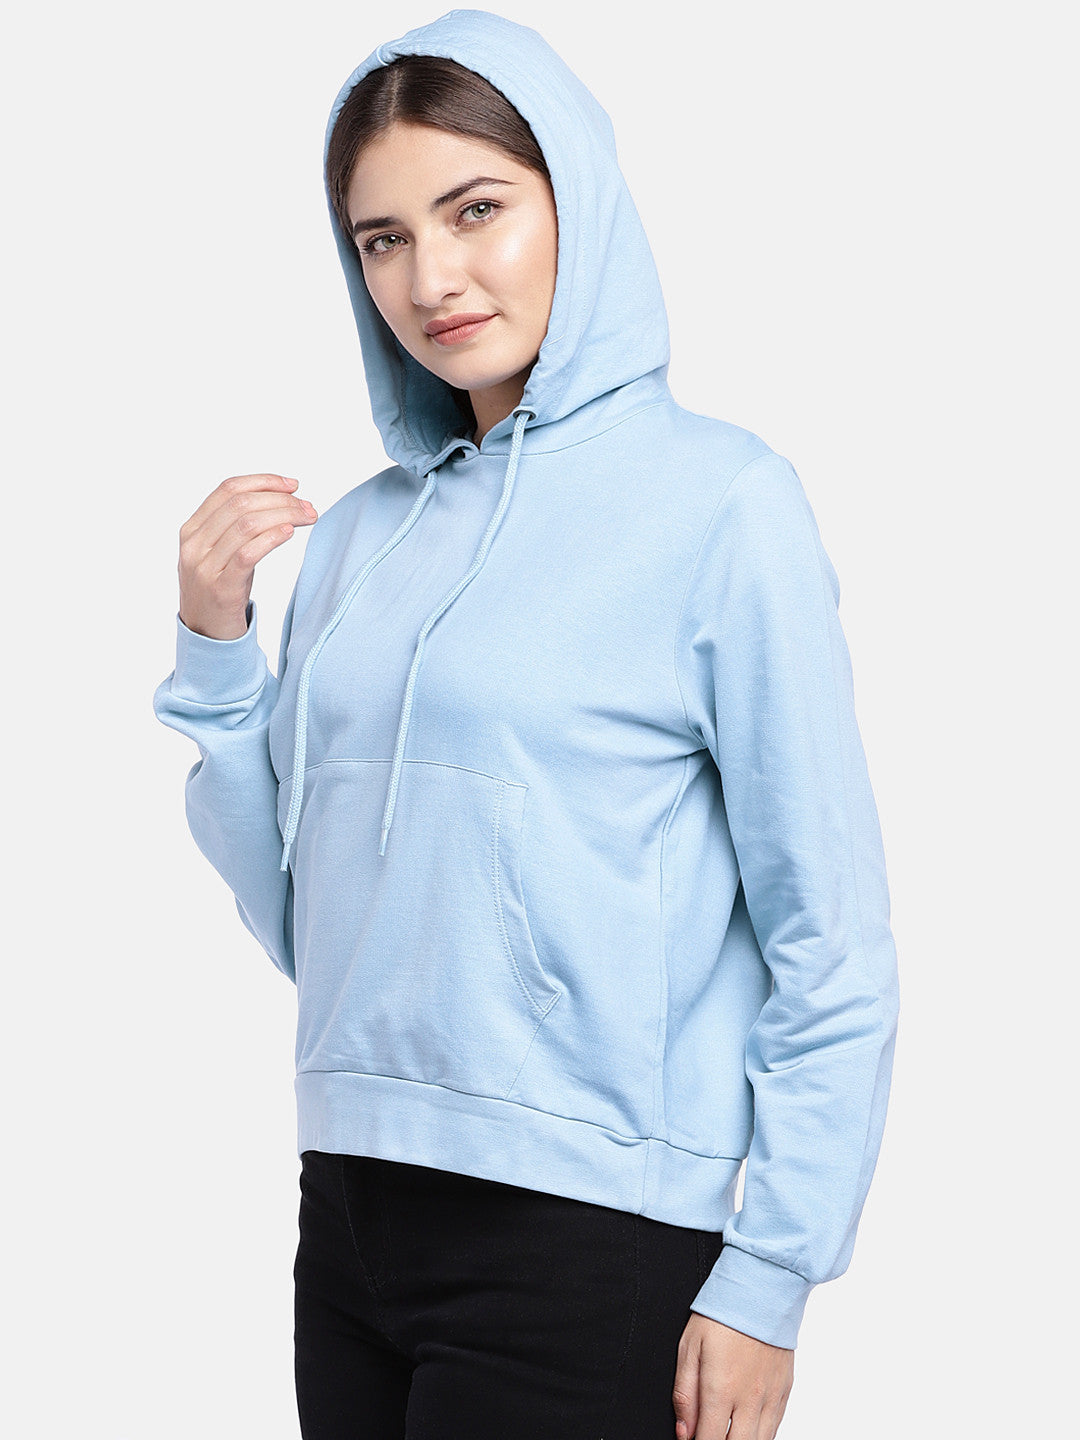 Blue Solid Hooded Sweatshirt-2